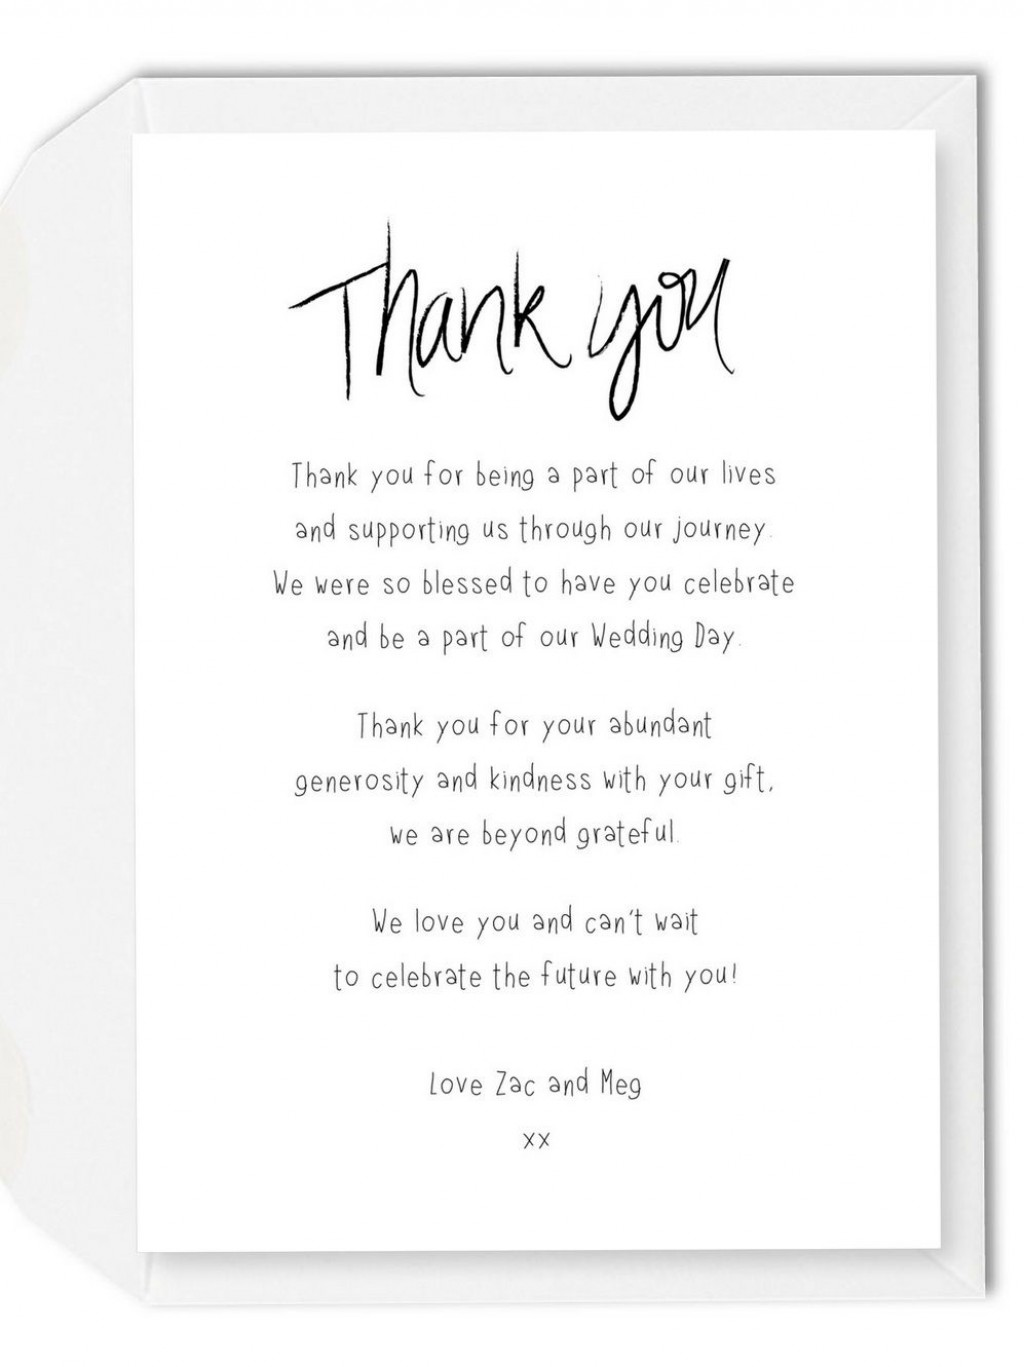 002 Imposing Wedding Thank You Note Template Picture  Example Wording Sample For Money Gift ShowerLarge